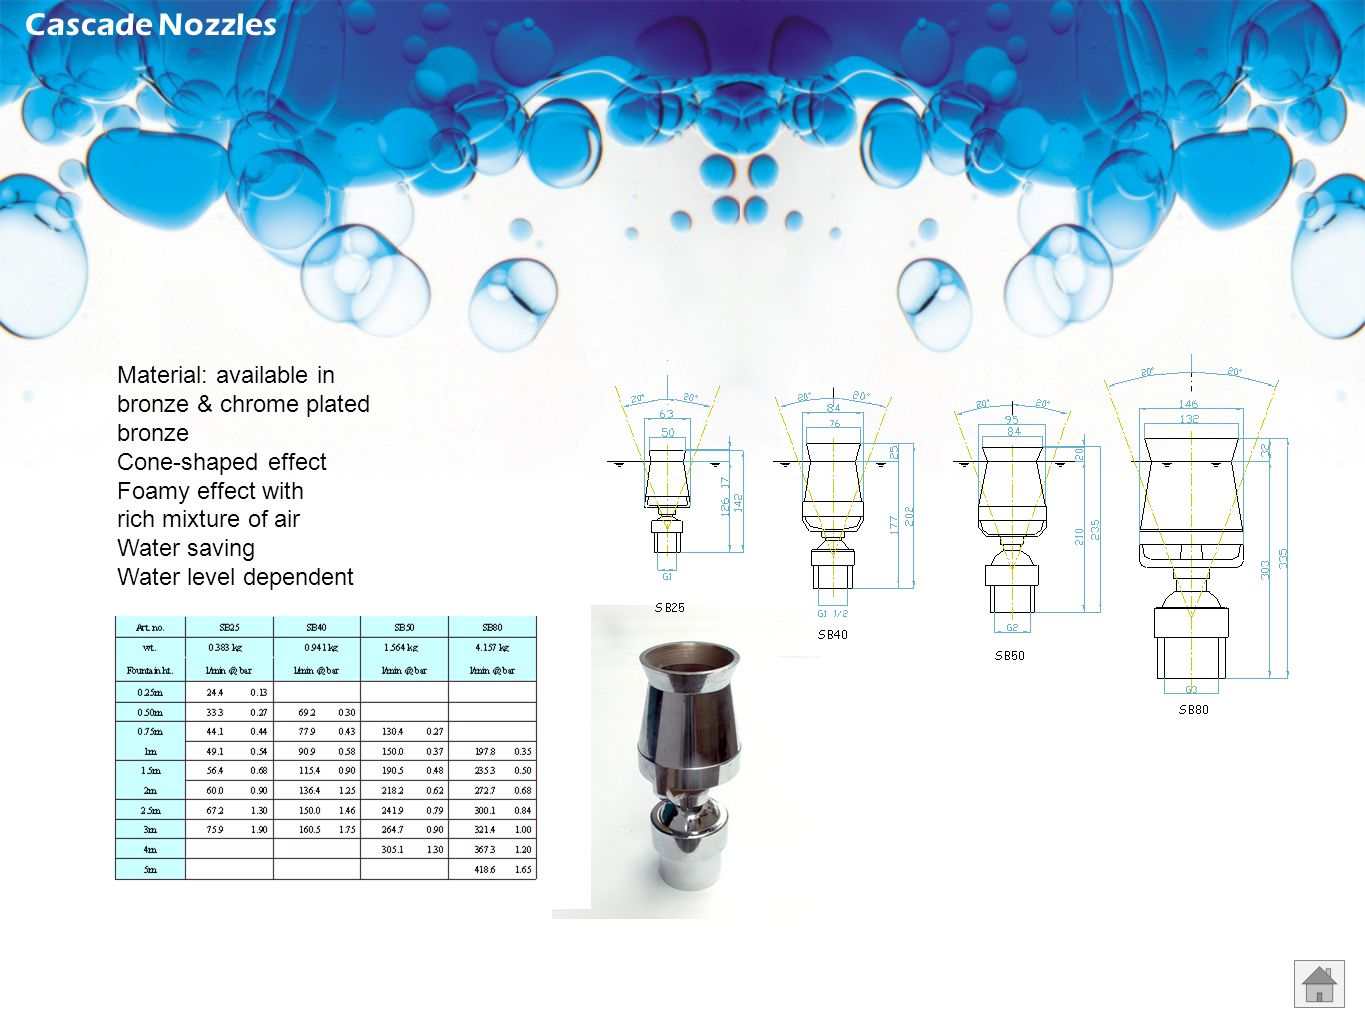 Cascade Nozzles Material: available in bronze & chrome plated bronze